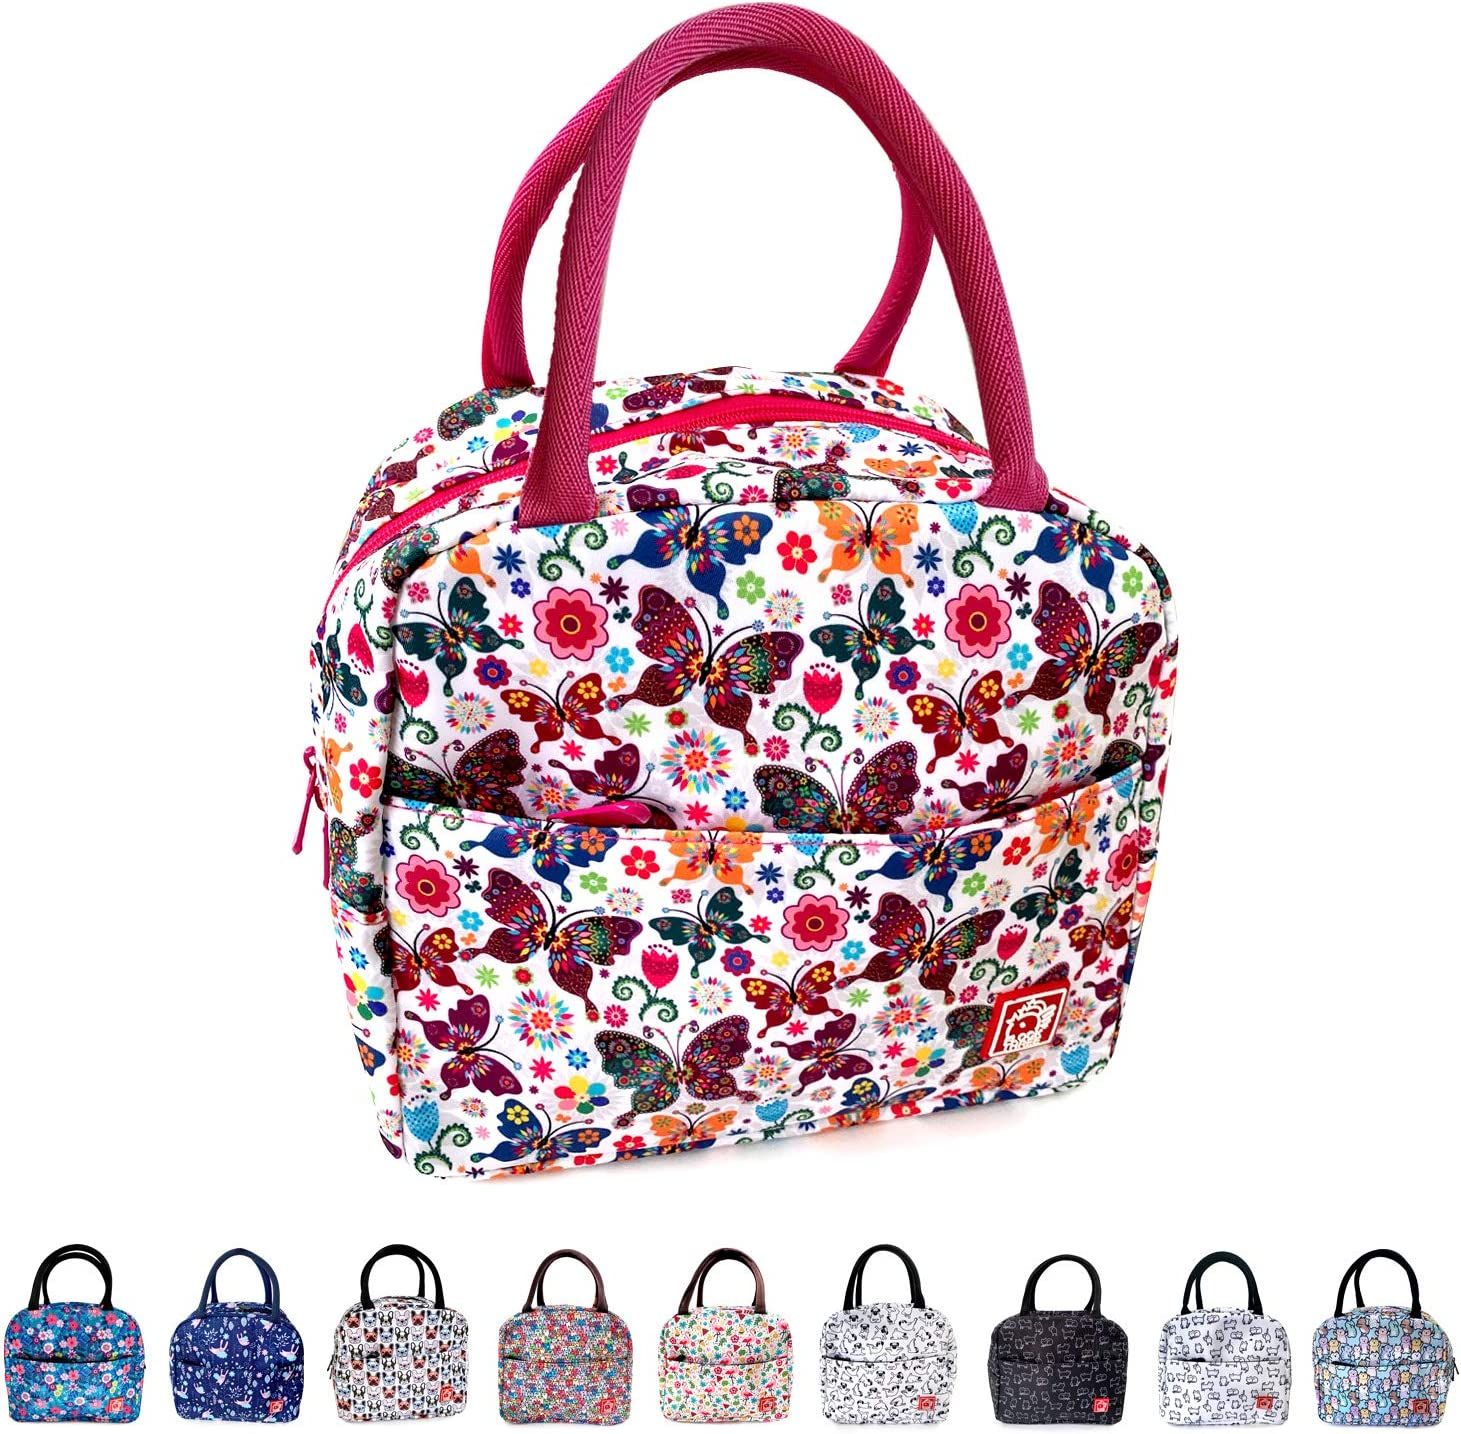 Waterproof Insulated Reusable Lunch Bag Food Drinks Container with Front Padded Pocket Double Zippers For Kids Men Women Work School Picnic Butterflies